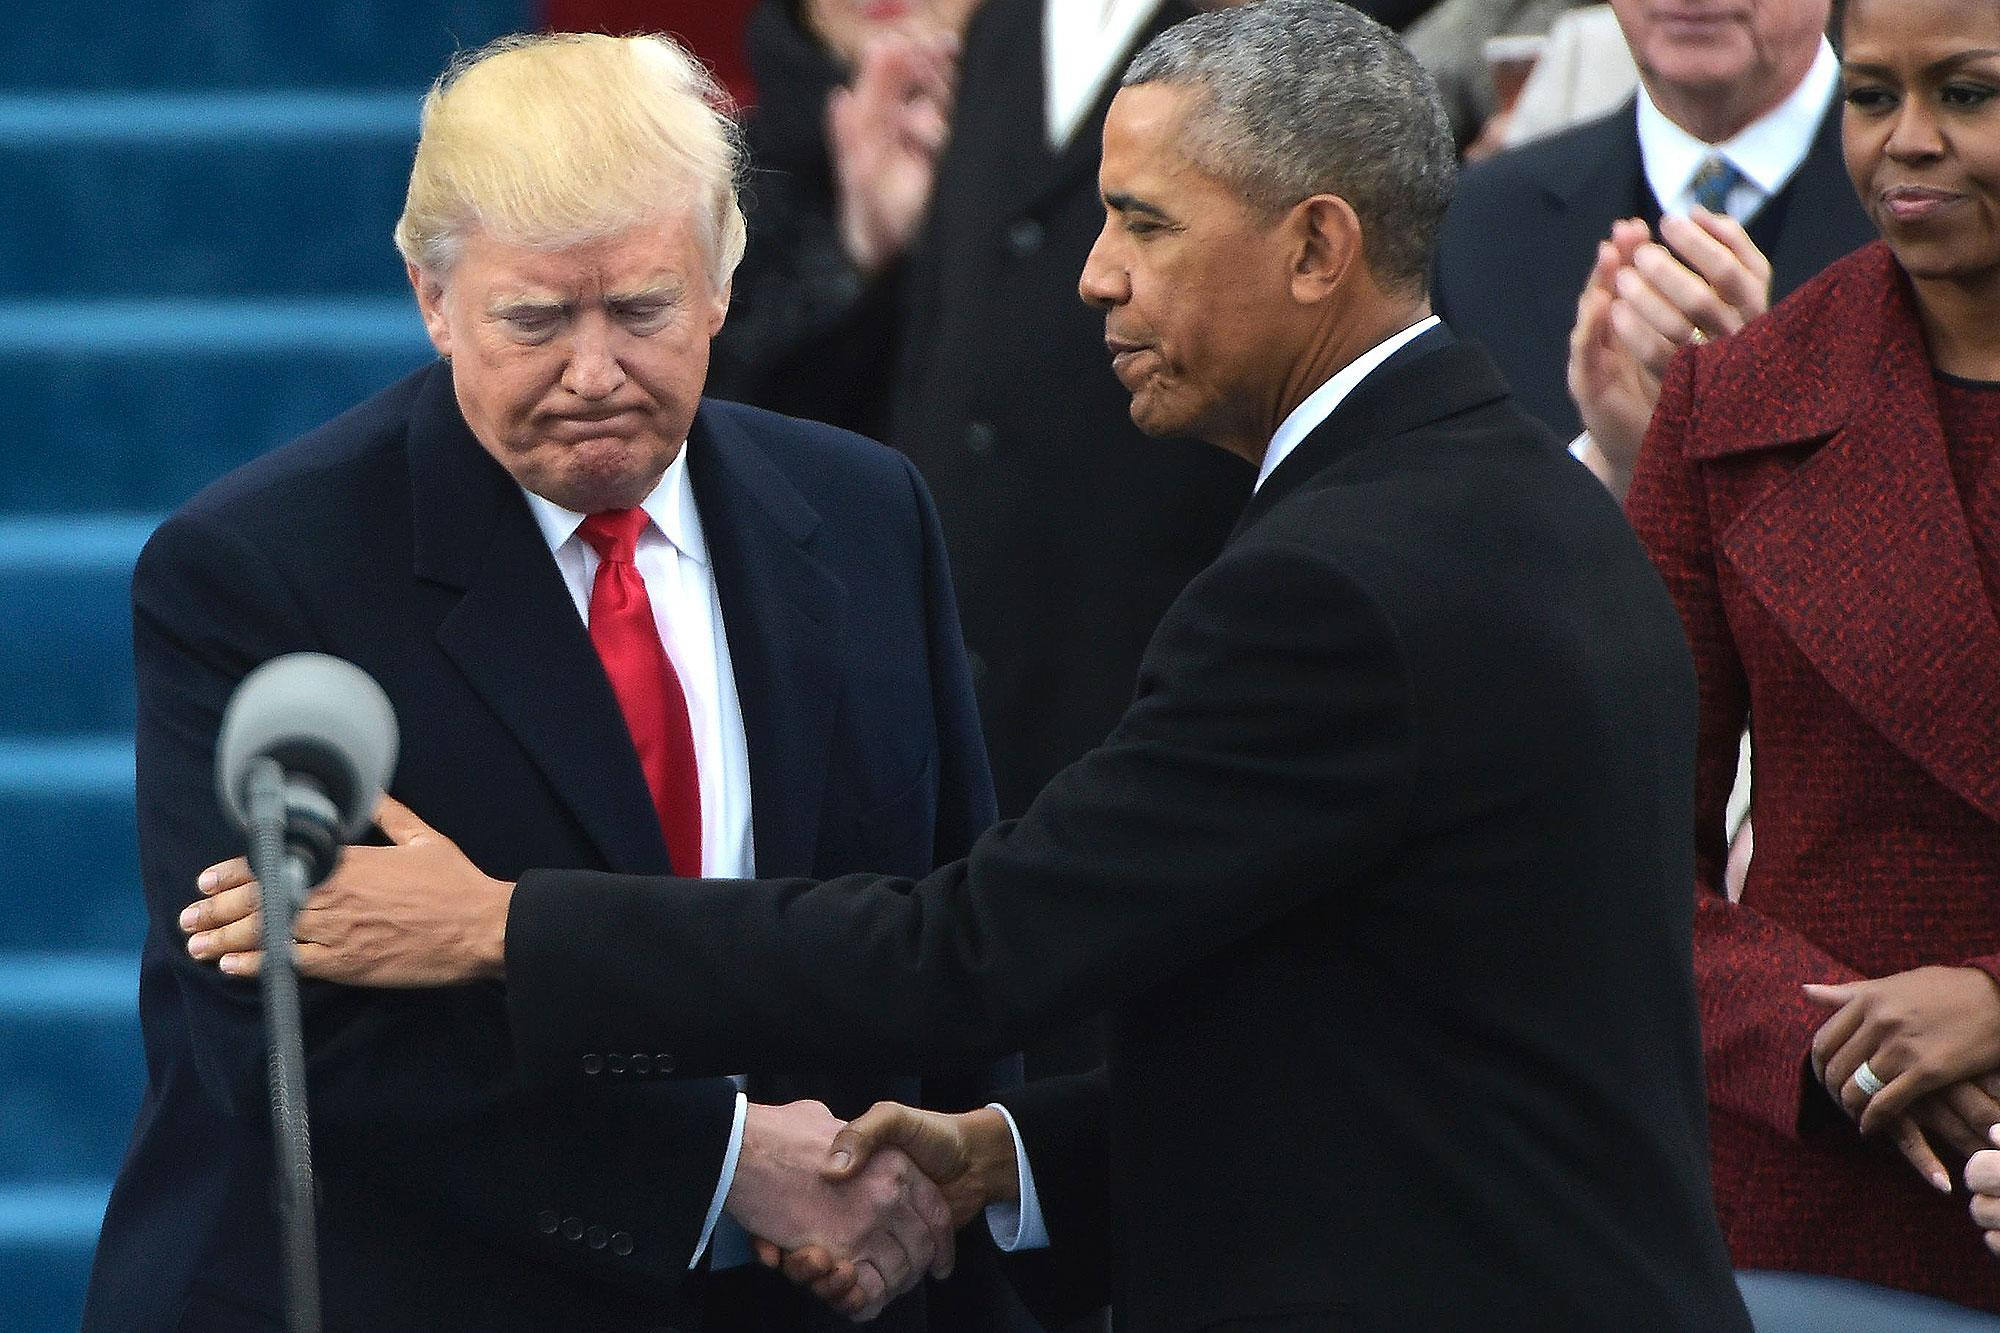 Donald Trump and Barack Obama Share Awkward Last Embrace Ahead of Swearing-In Ceremony